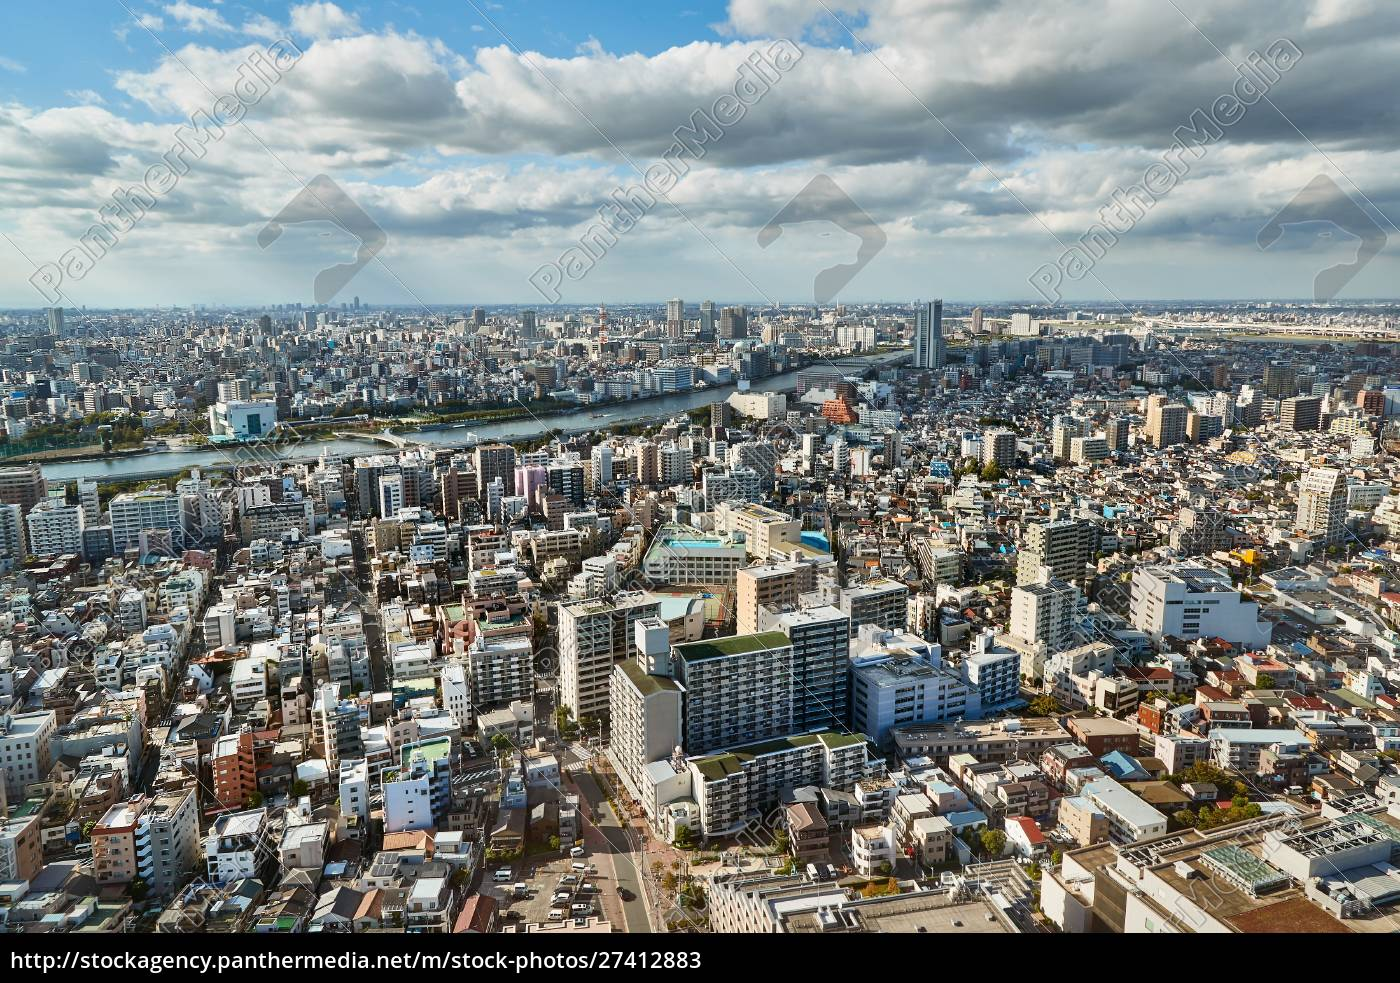 tokyo, residential, district - 27412883